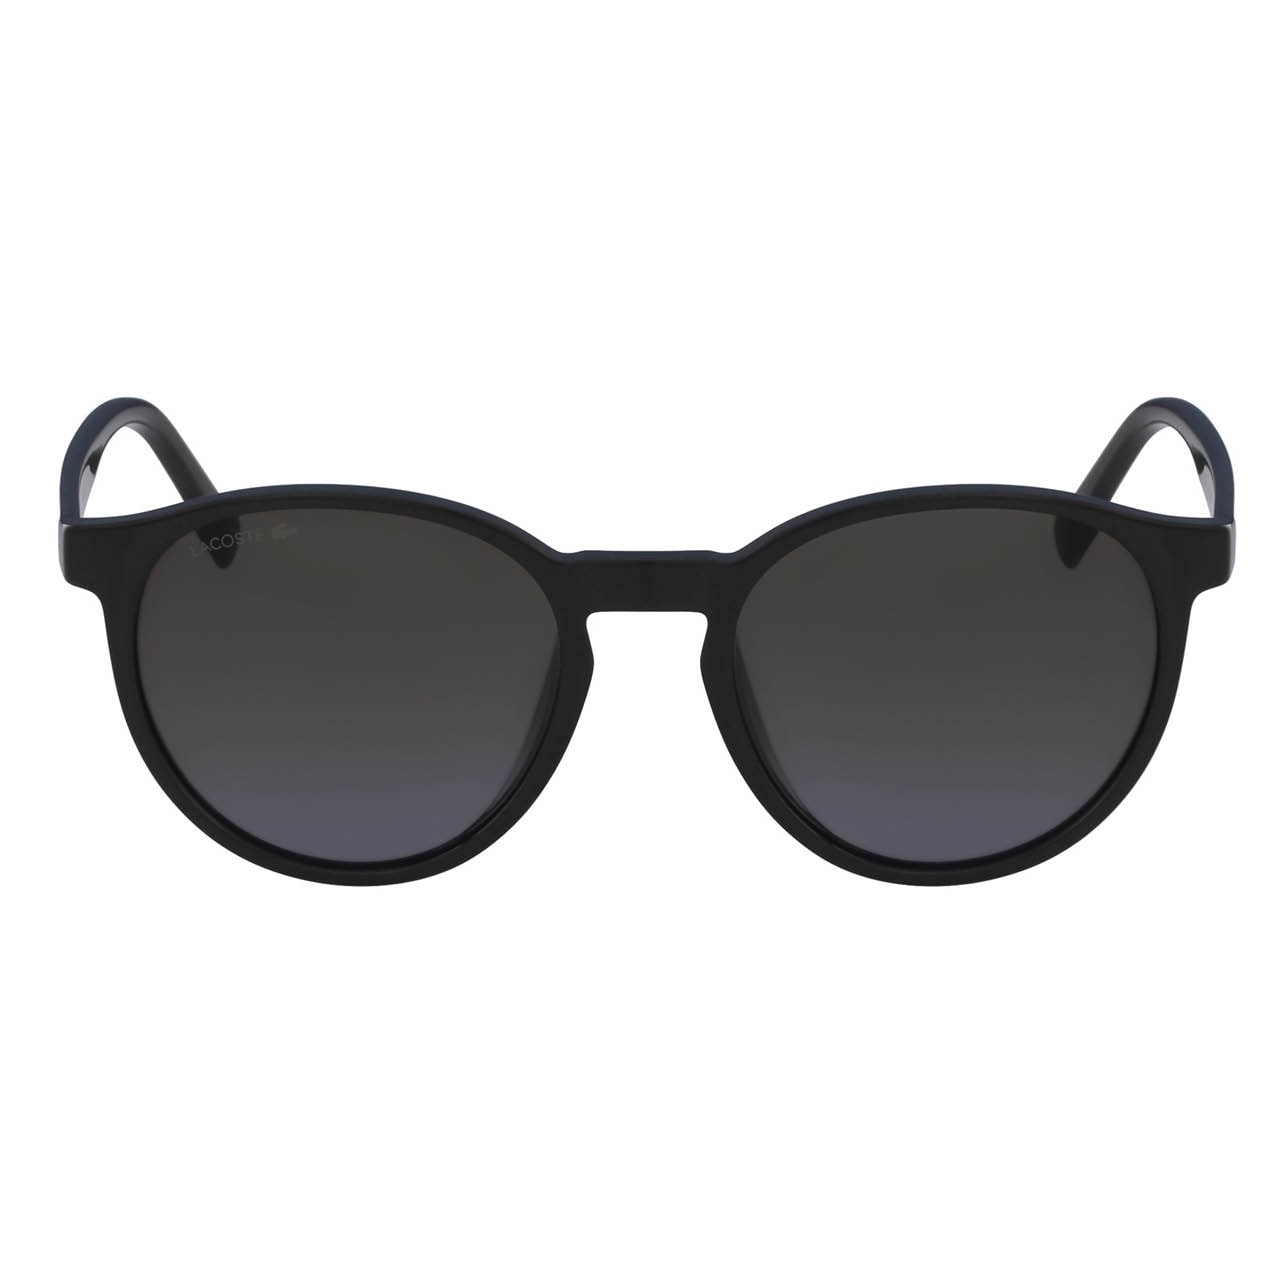 Unisex Plastic Round Color Block Sunglasses